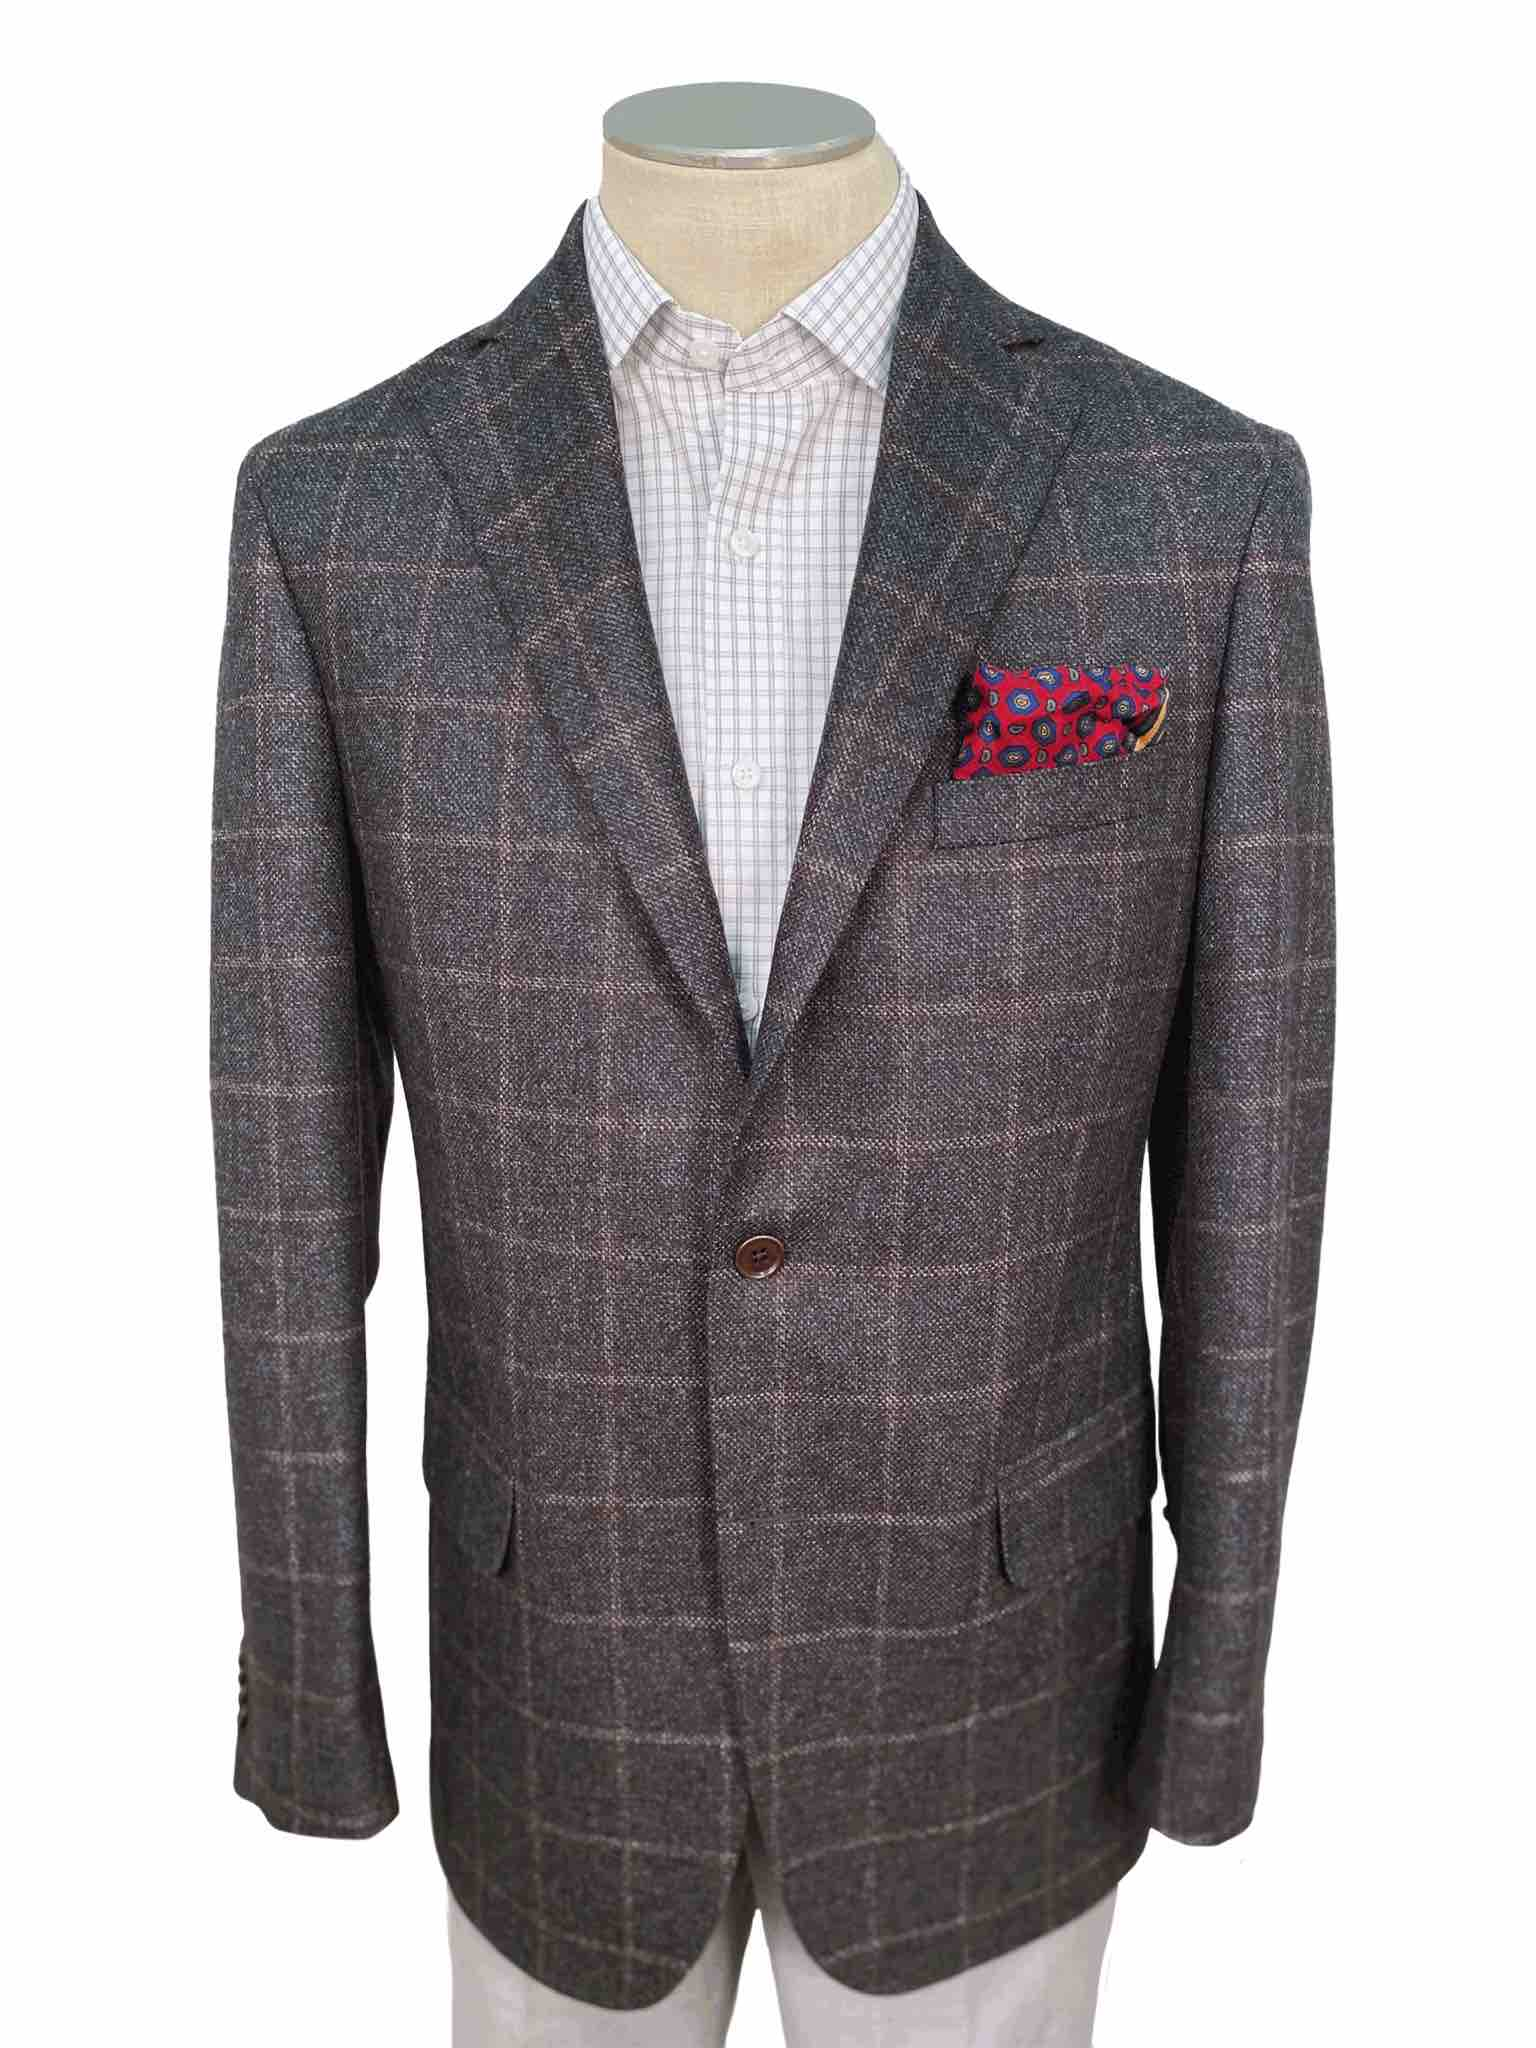 Men's Sport Coat Modern Cut - GREY WINDOWPANE - 100% WOOL